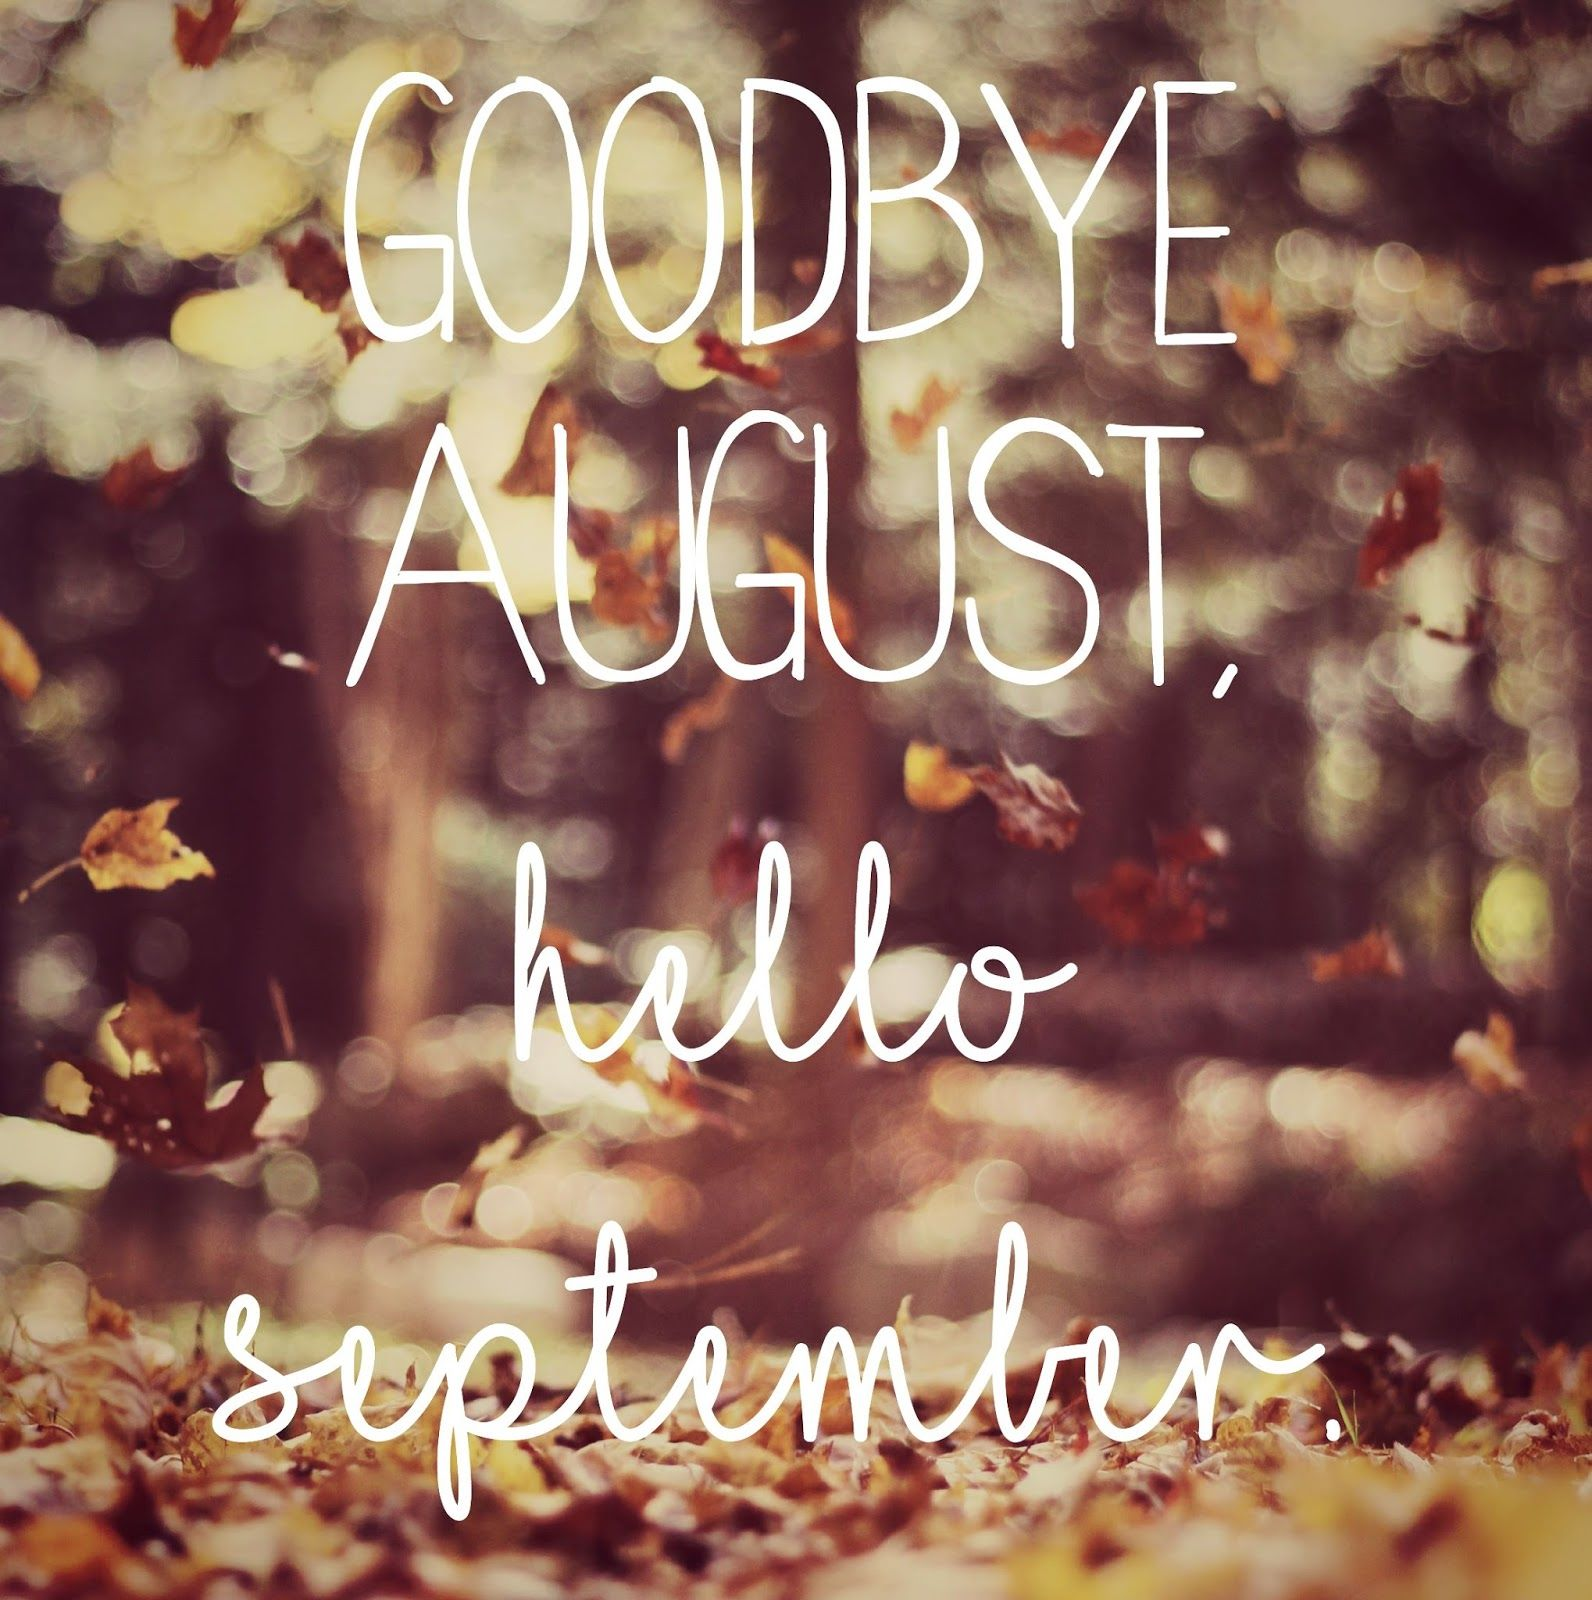 Goodbye August Hello September Photos Free Download